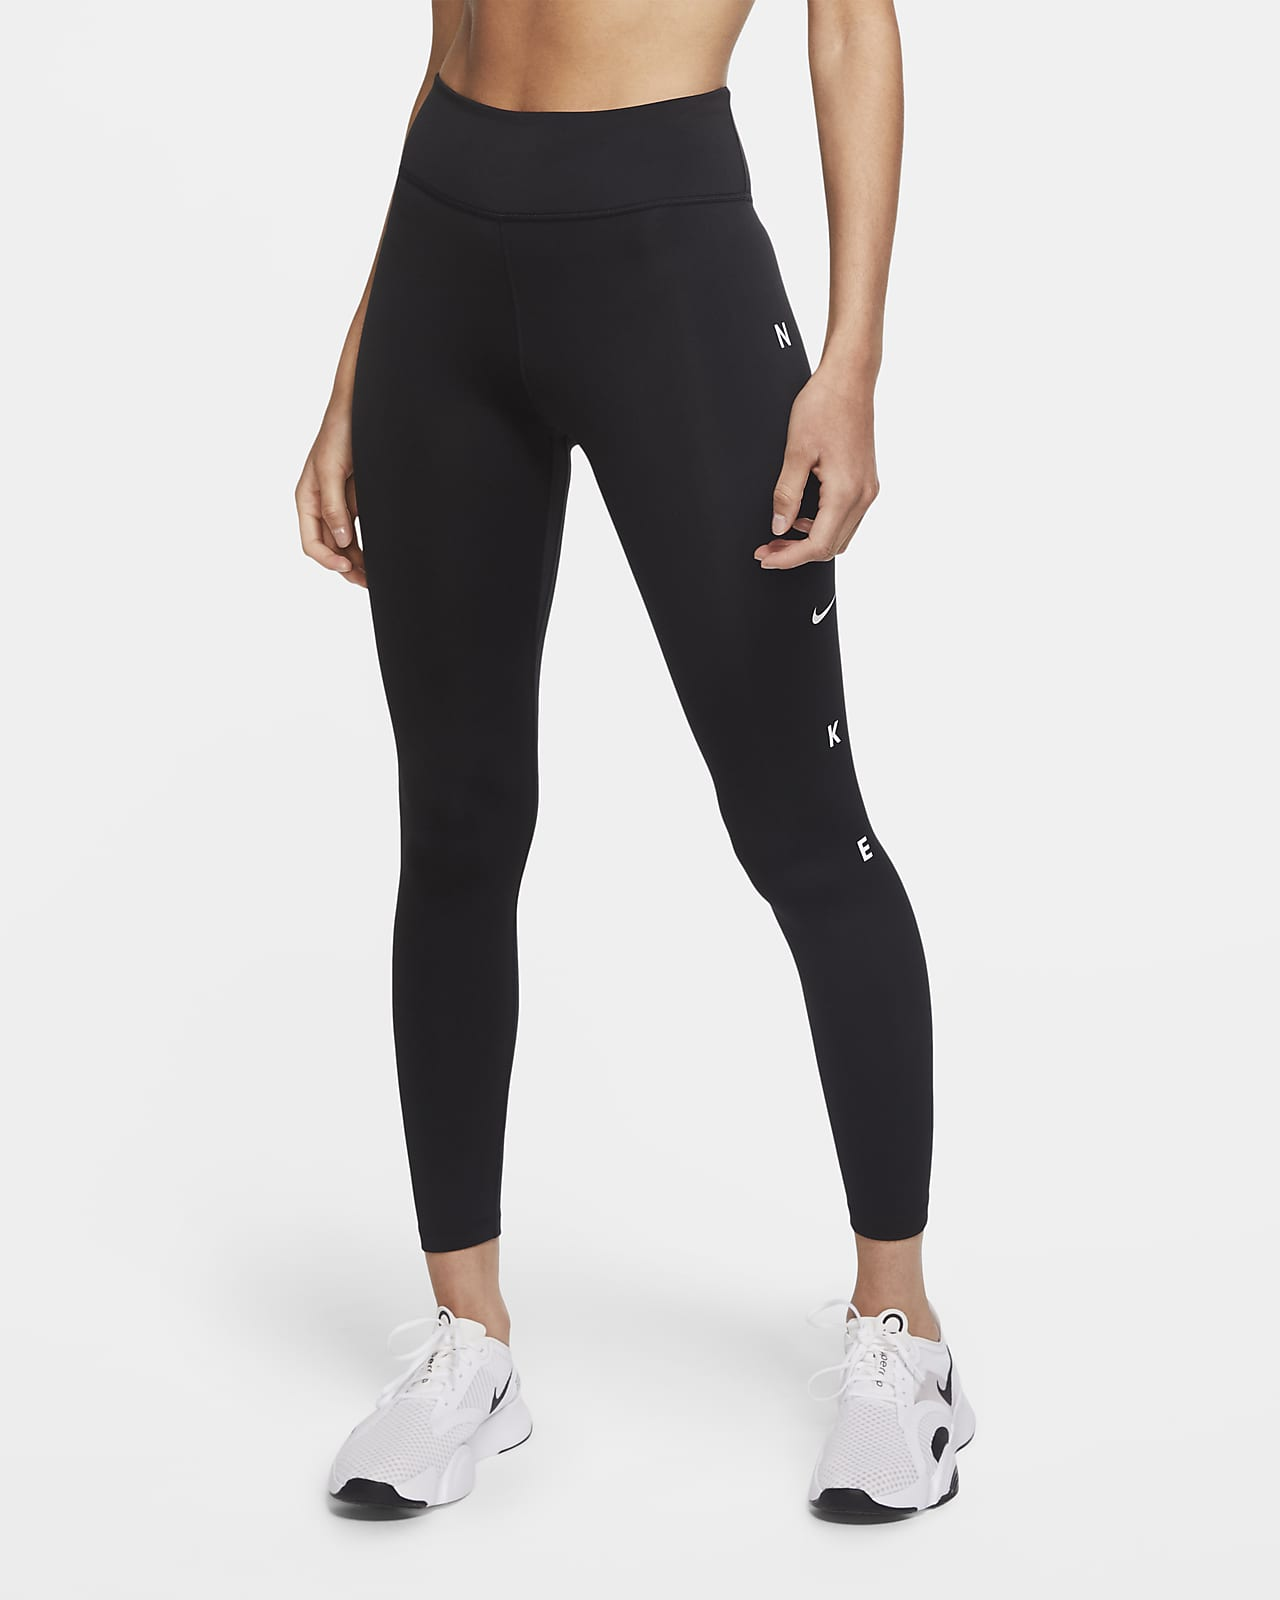 Nike One 7/8-Tights mit Grafik für Damen